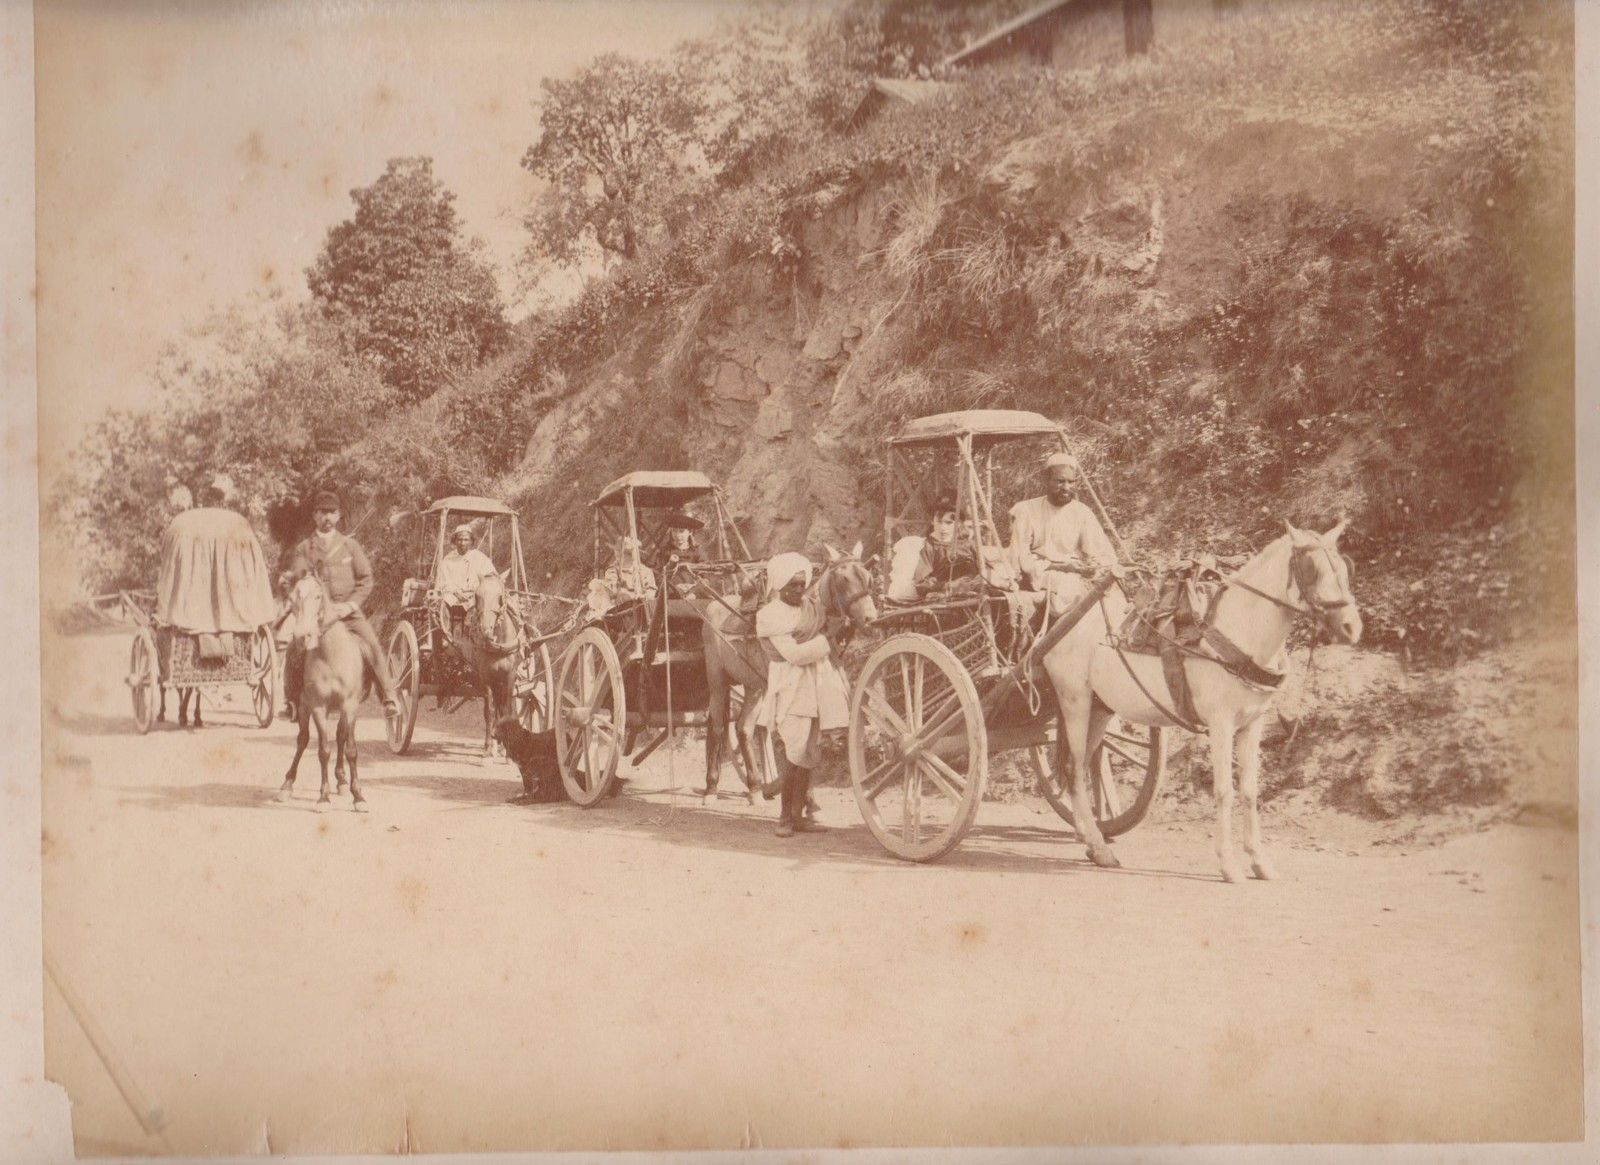 Horse Carts on a Mountain Road - India c1870's